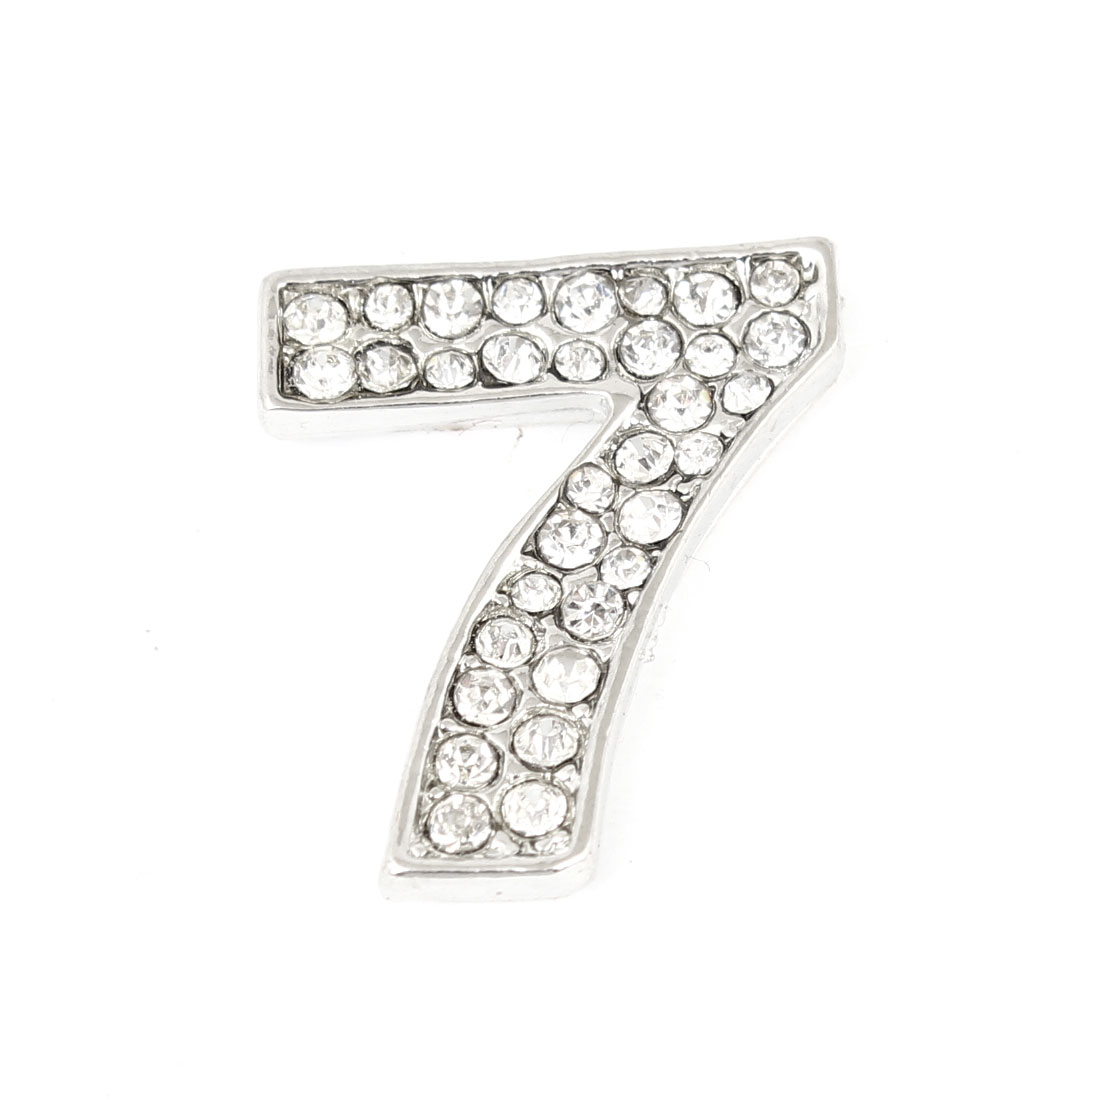 Car Bling Rhinestones Inlaid Silver Tone Arabic Number 7 Shaped Sticker Decor